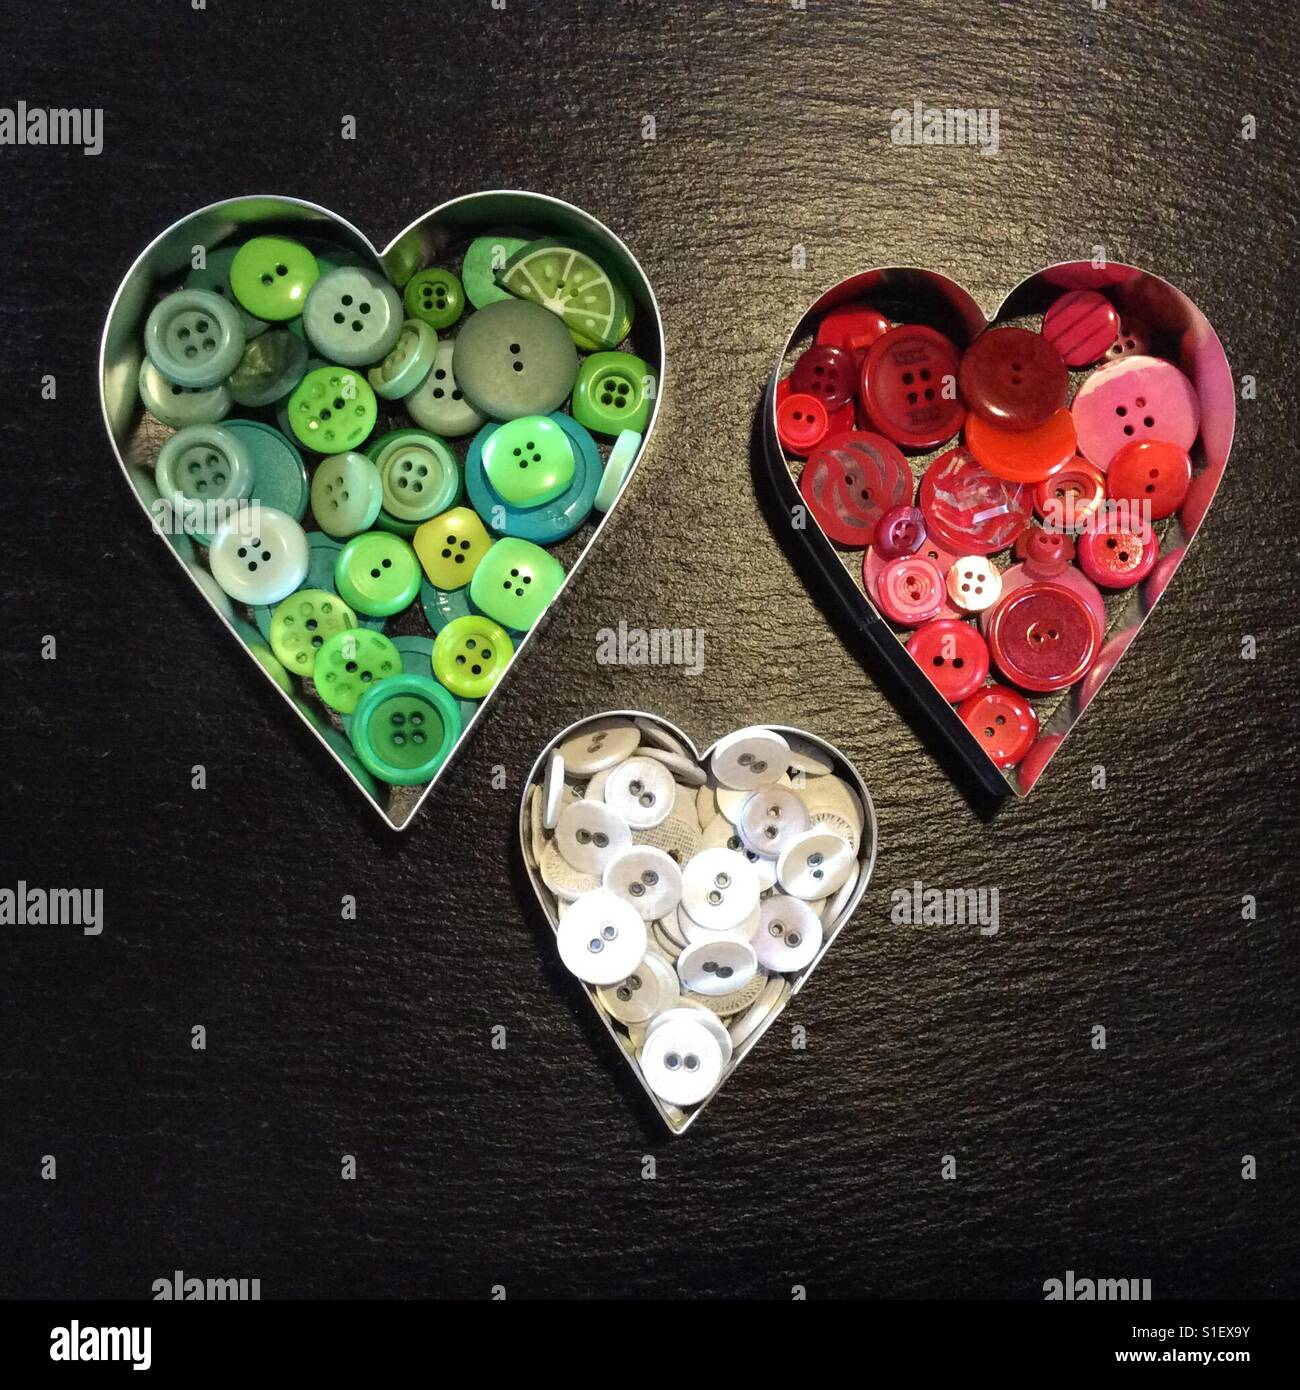 Collection of green, red and white buttons in heart shaped